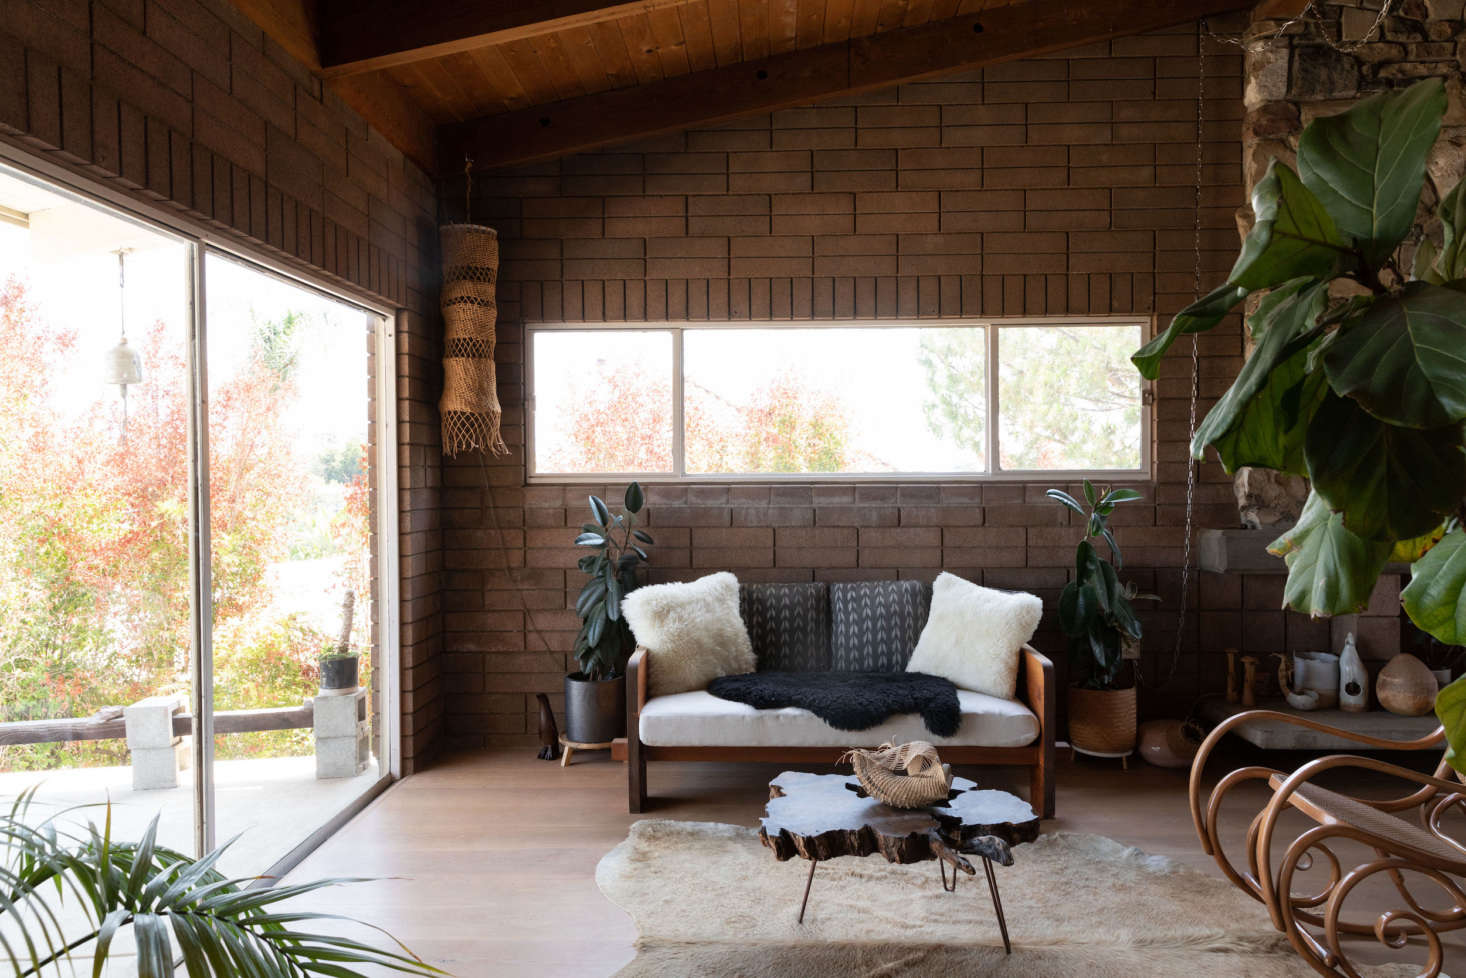 Wood-paneled ceilings and brick walls keep the house cool on hot days. Hanging in the corner is one of her woven raffia creations.